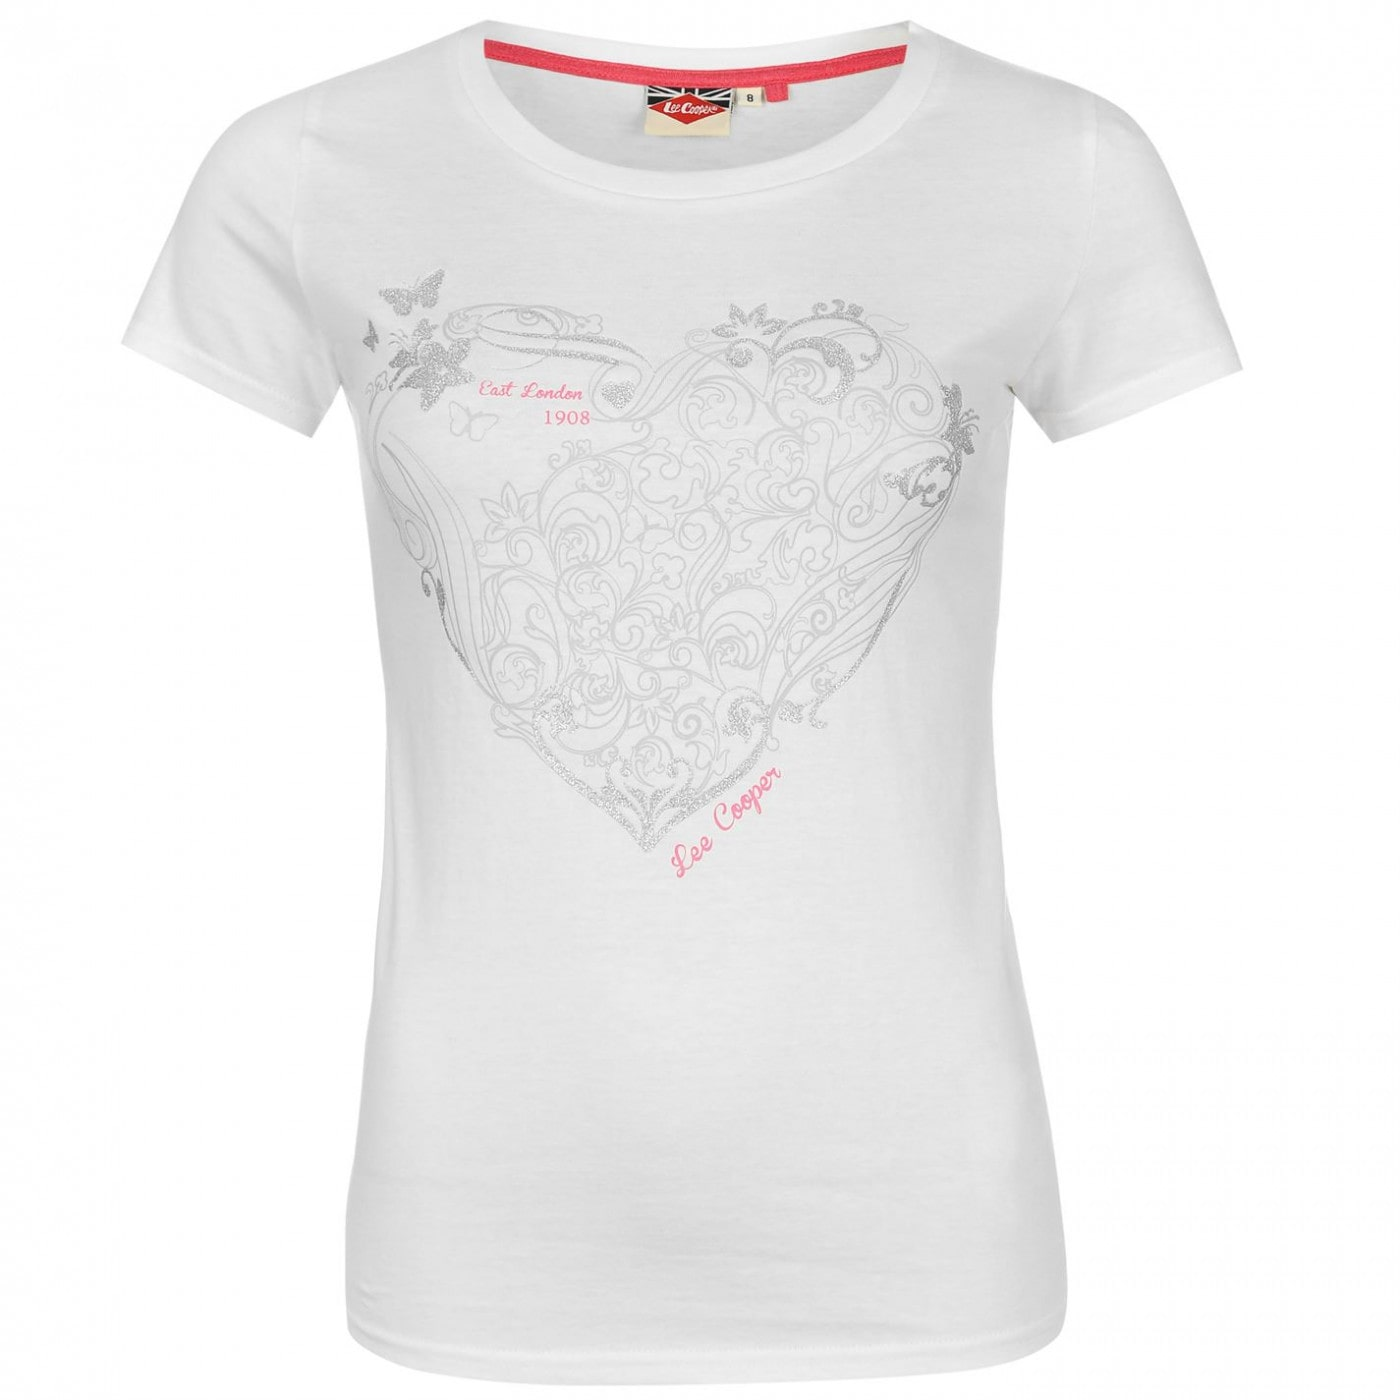 f81630767b4 Lee Cooper Fashion T Shirt Ladies - FACTCOOL